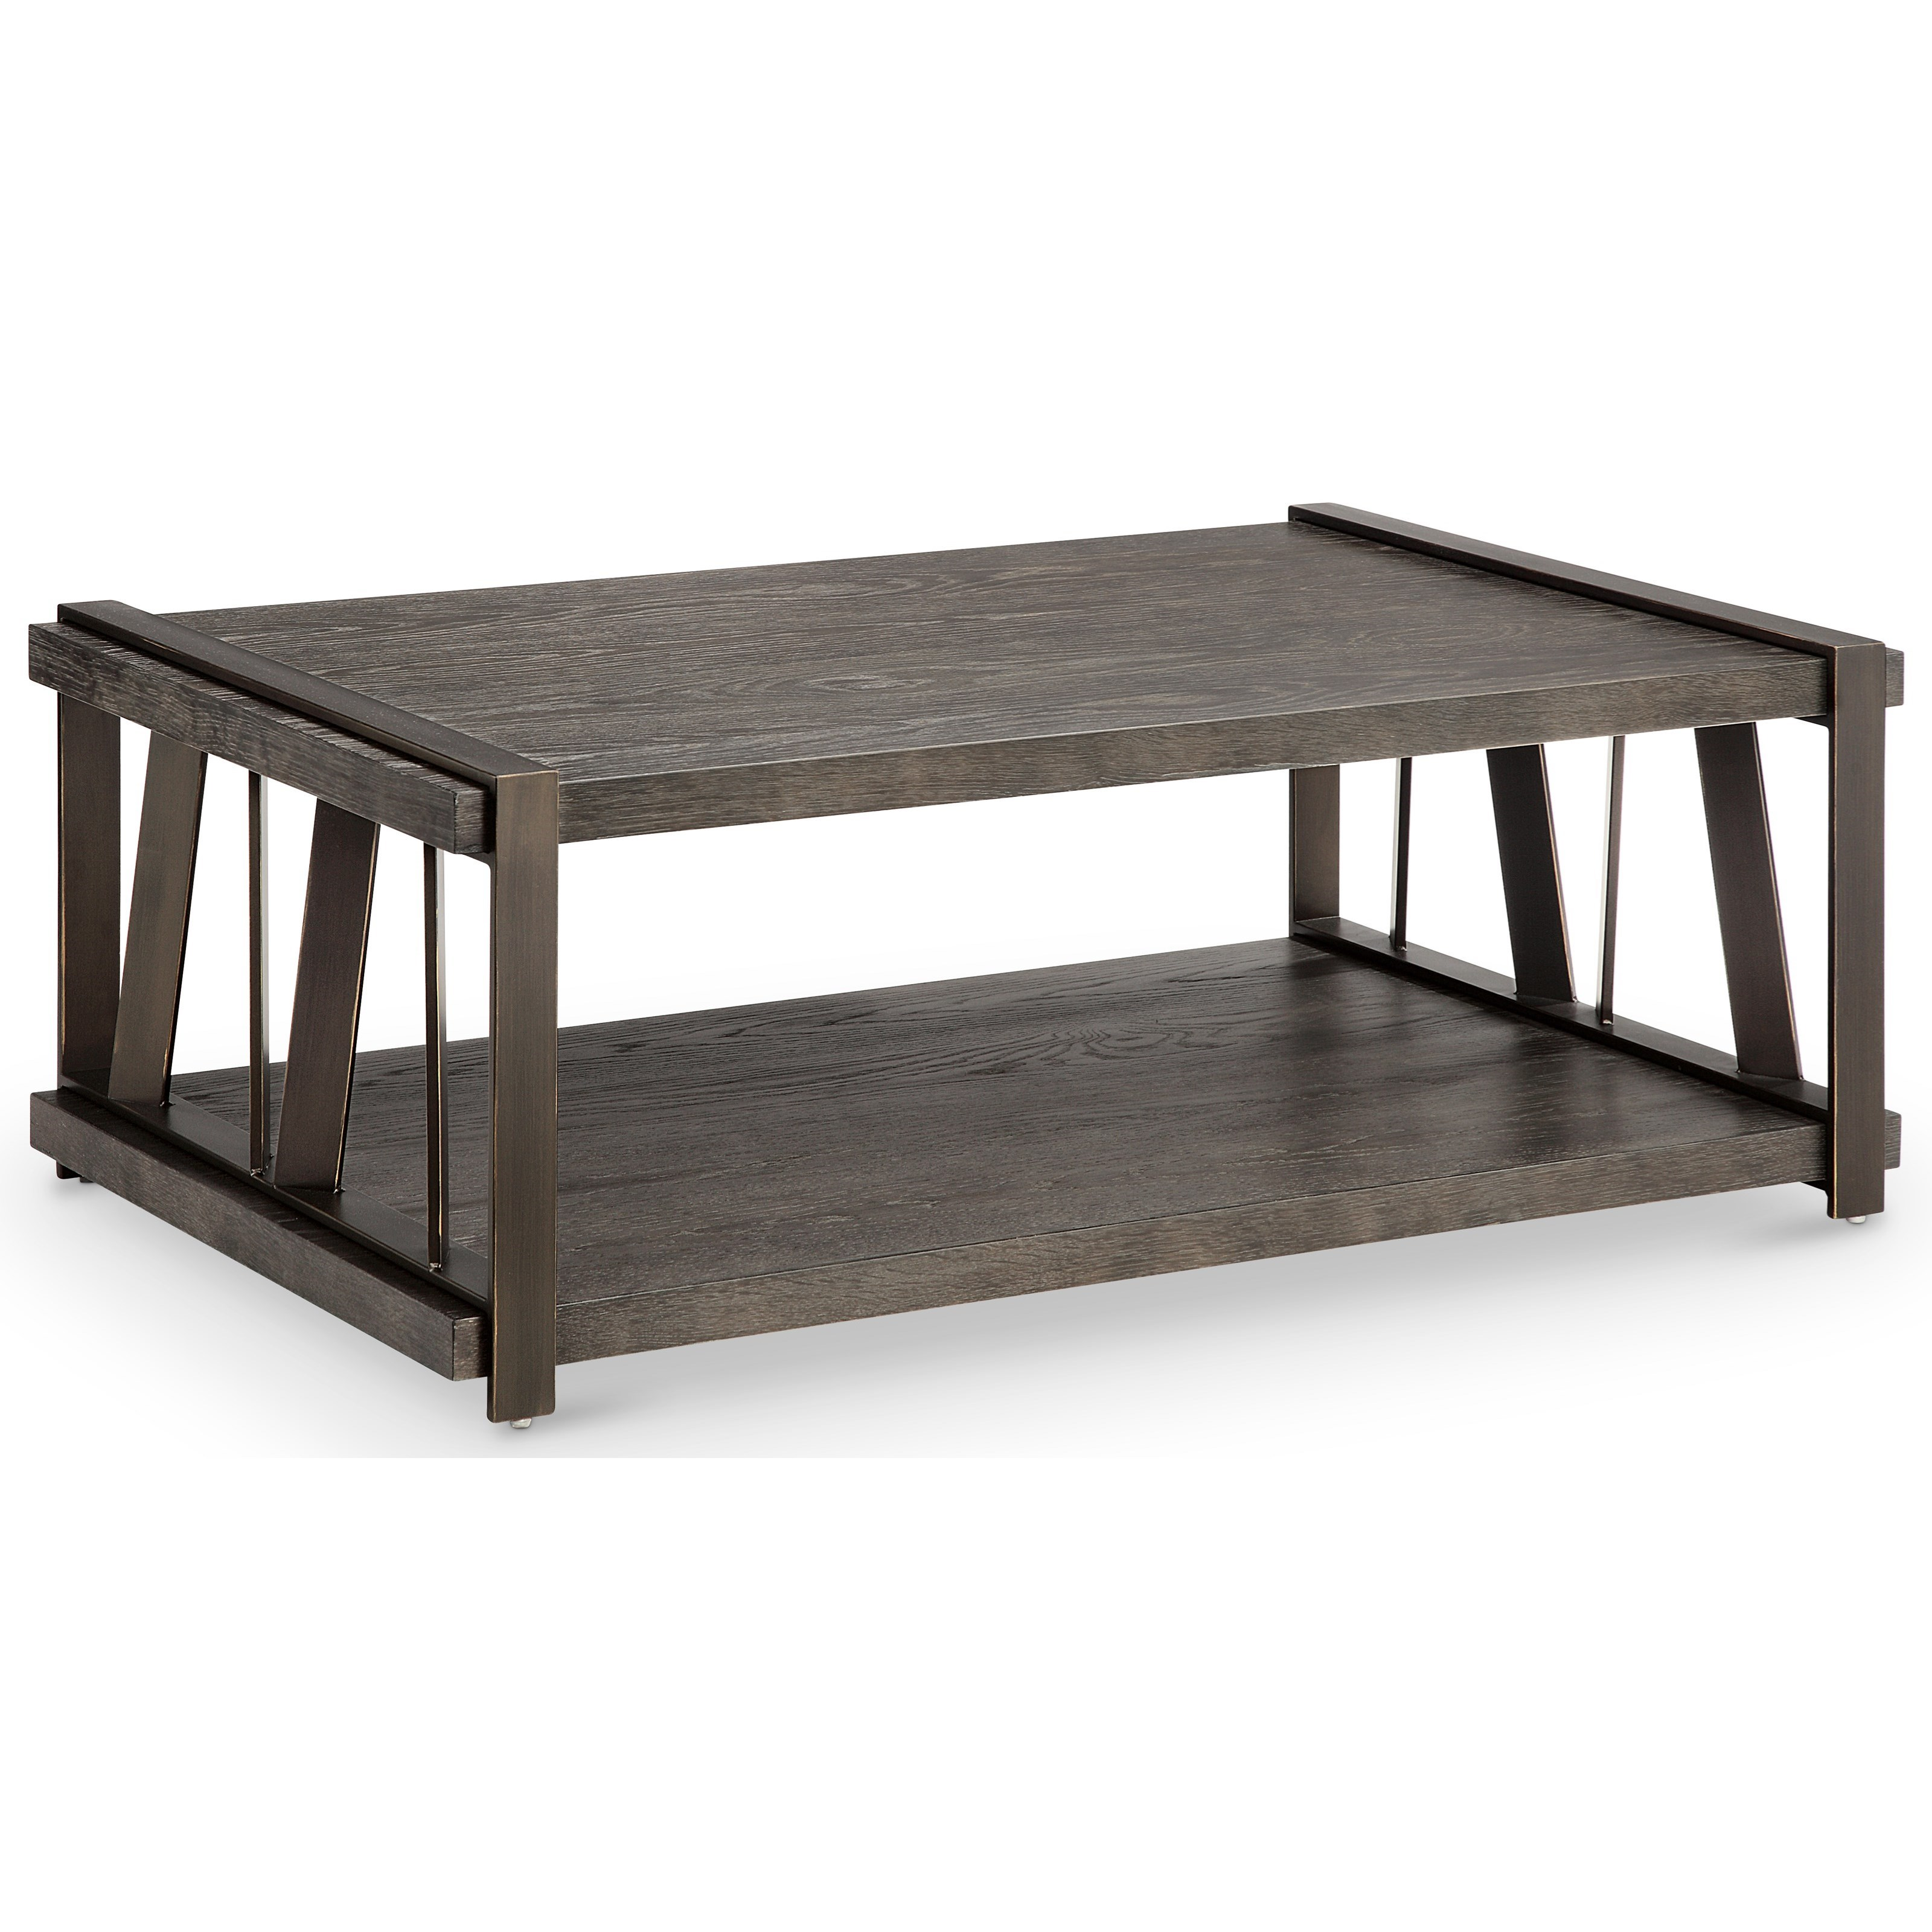 Magnussen Home Aviston Rectangular Cocktail Table With Casters   Item  Number: T4516 43